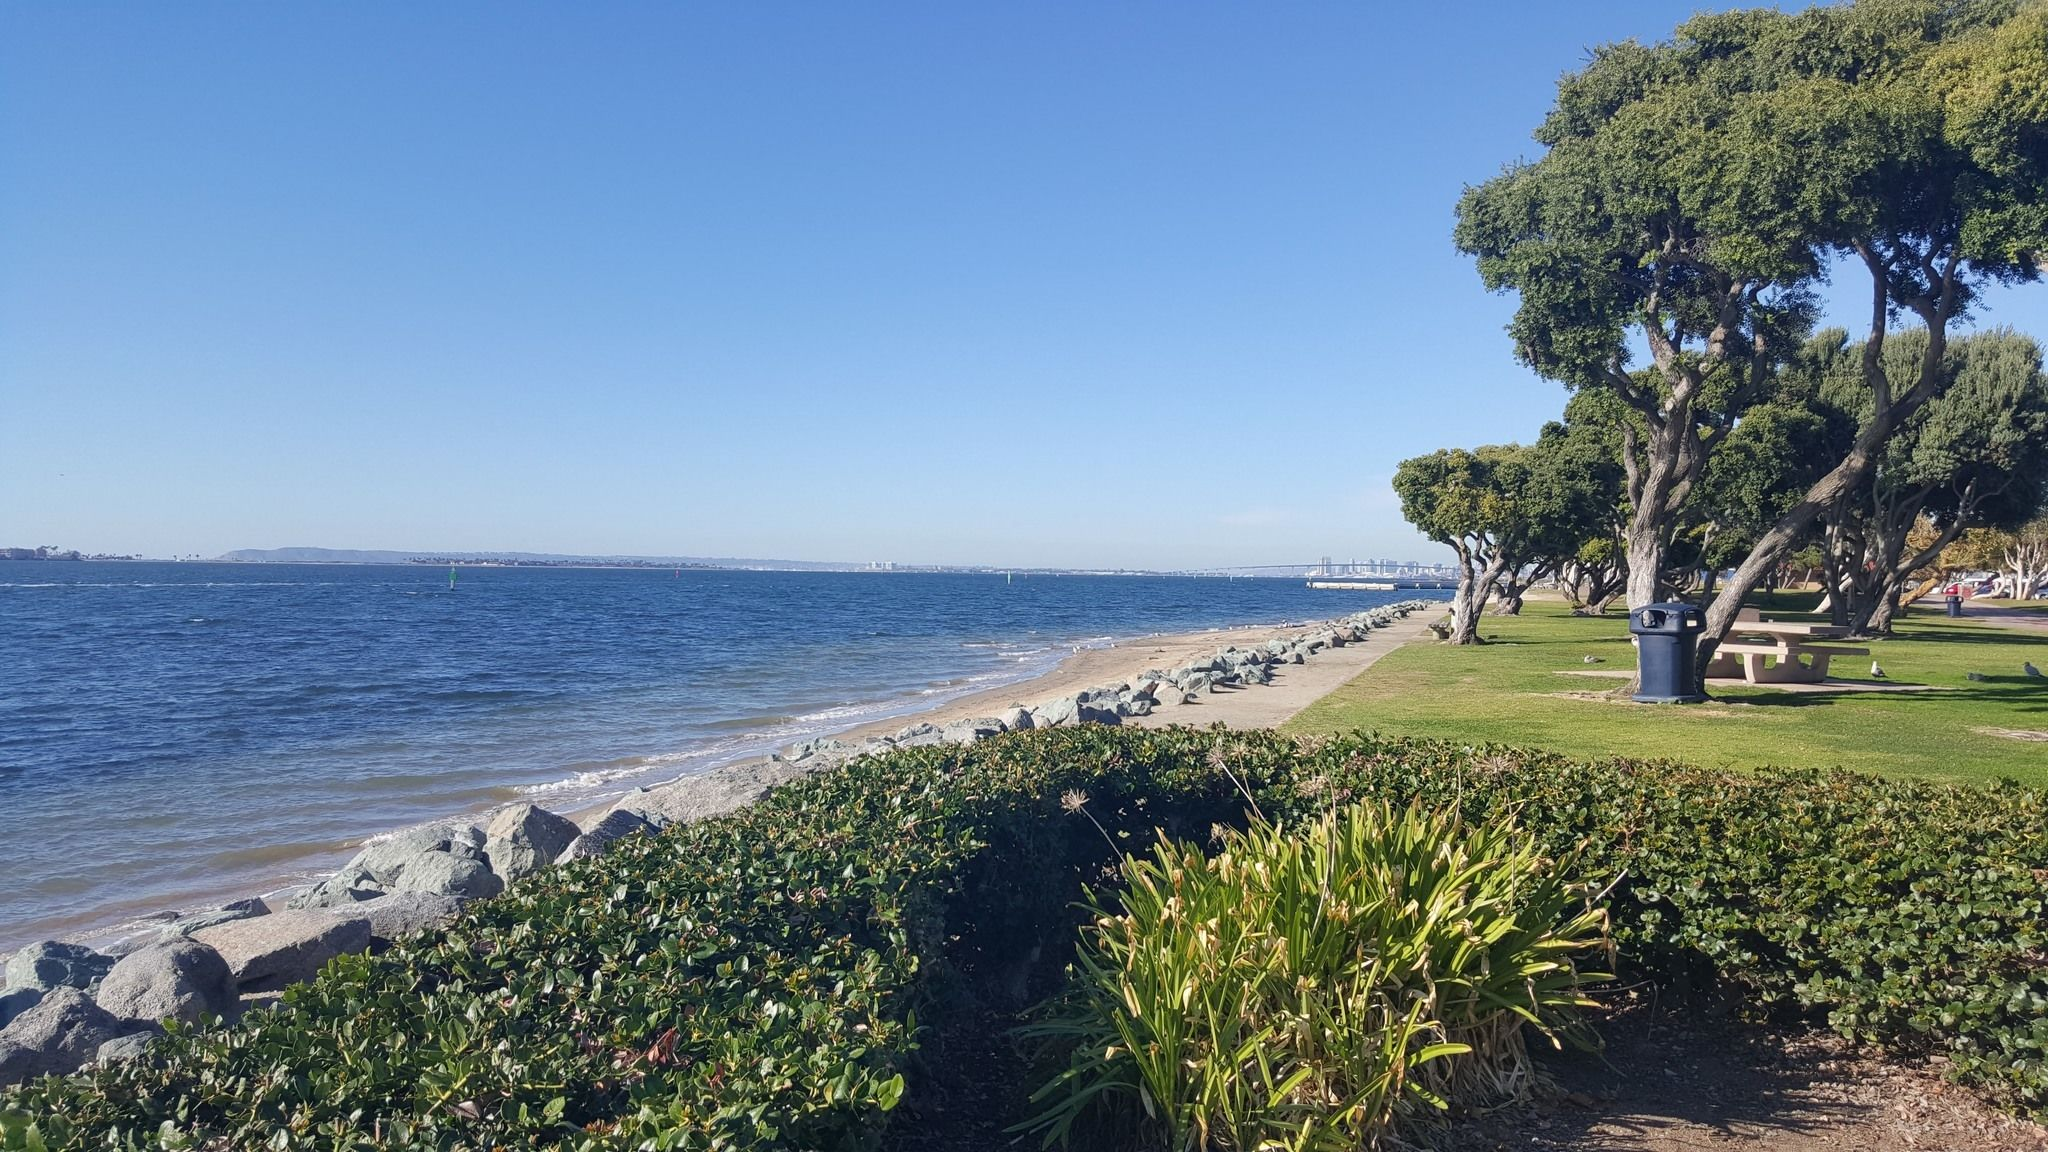 The Refreshing San Diego Coastline Trail In Southern California That Has 13-Miles Of Scenic Ocean Views